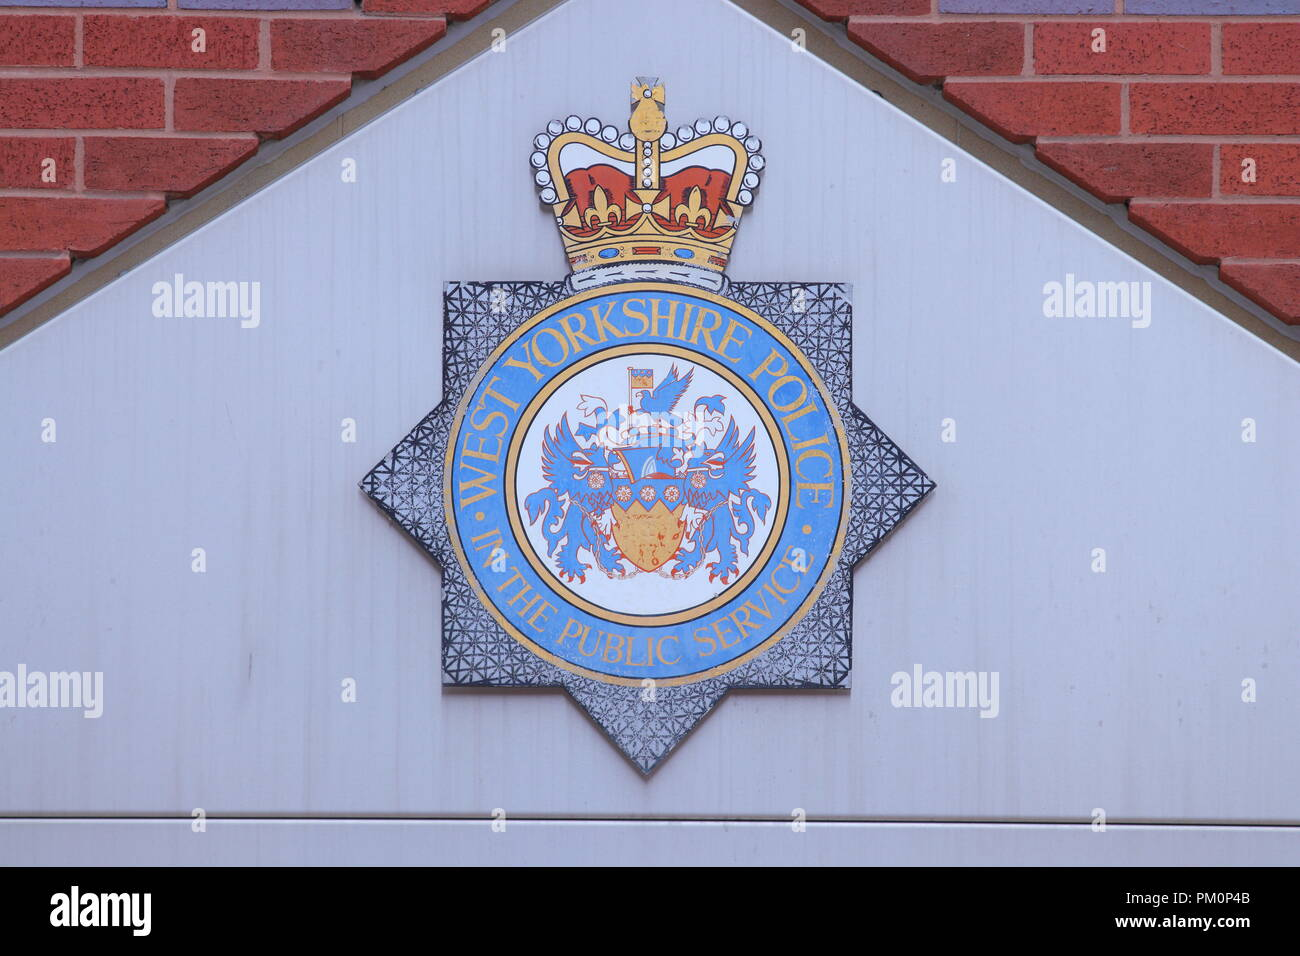 The entrance to Leeds Central Police Station - Stock Image